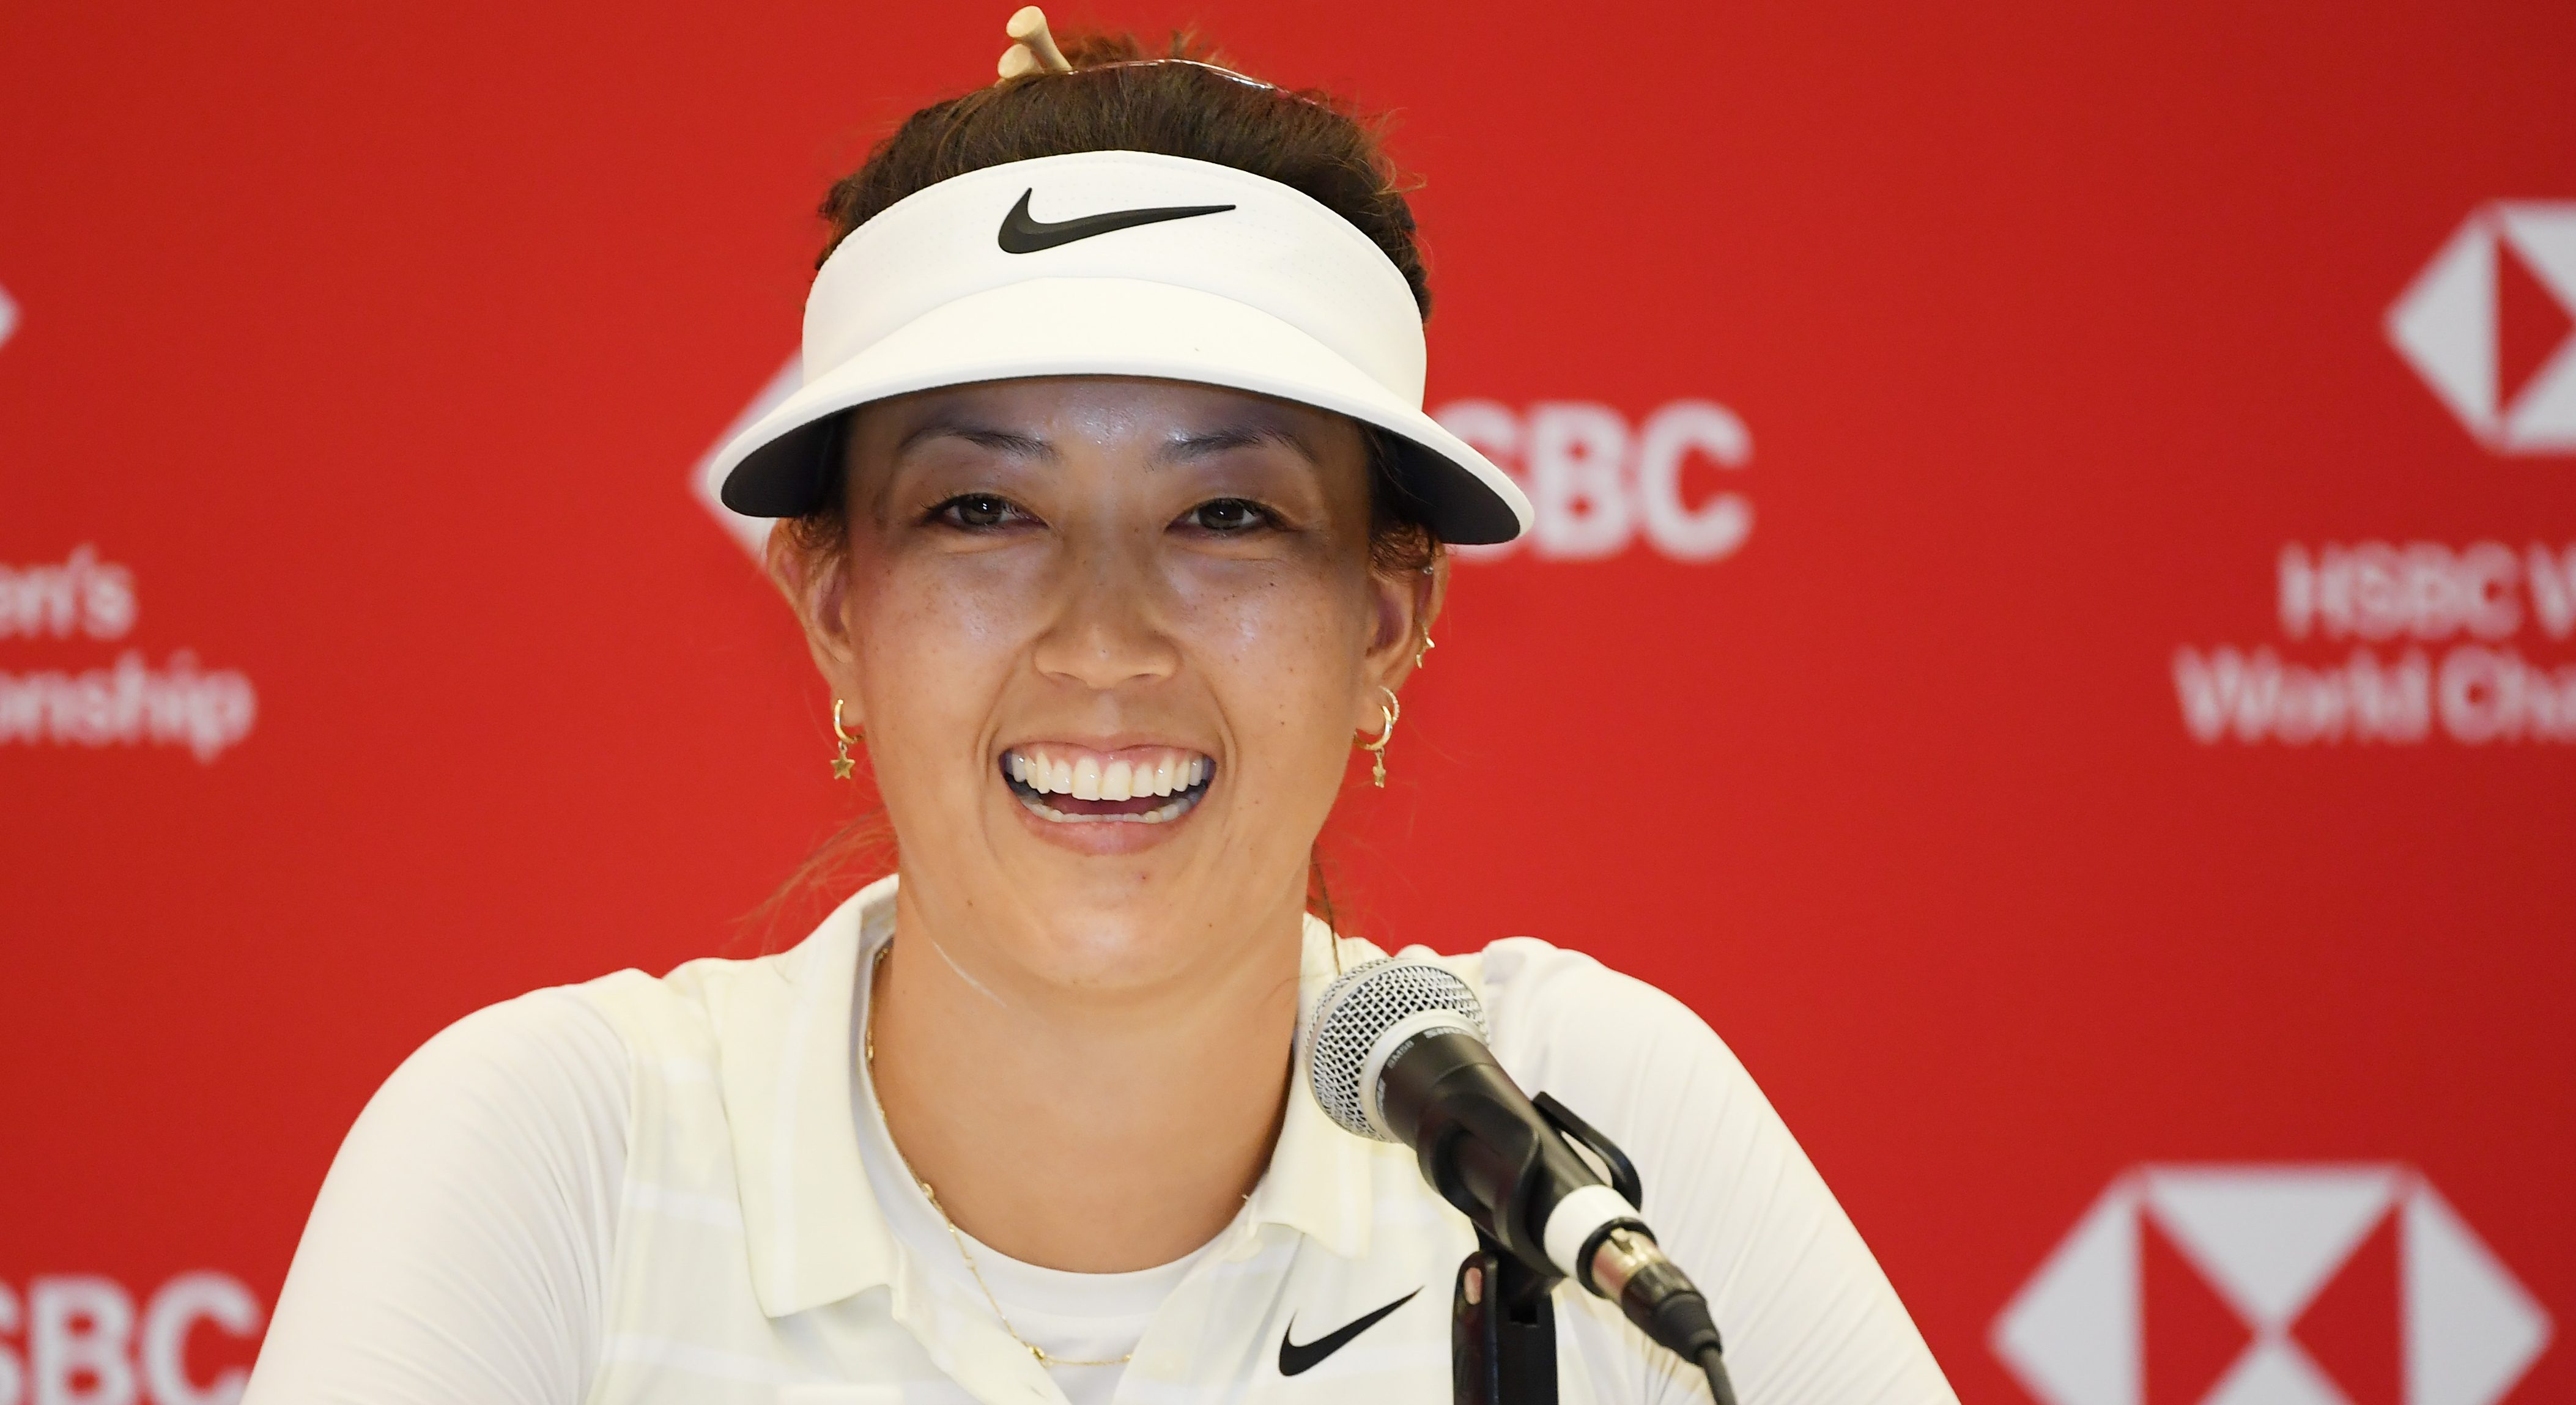 SINGAPORE, SINGAPORE - FEBRUARY 26: Michelle Wie of United States speaks to the media during a press conference prior to the HSBC Women's World Championship at Sentosa Golf Club on February 26, 2019 in Singapore. (Photo by Ross Kinnaird/Getty Images)